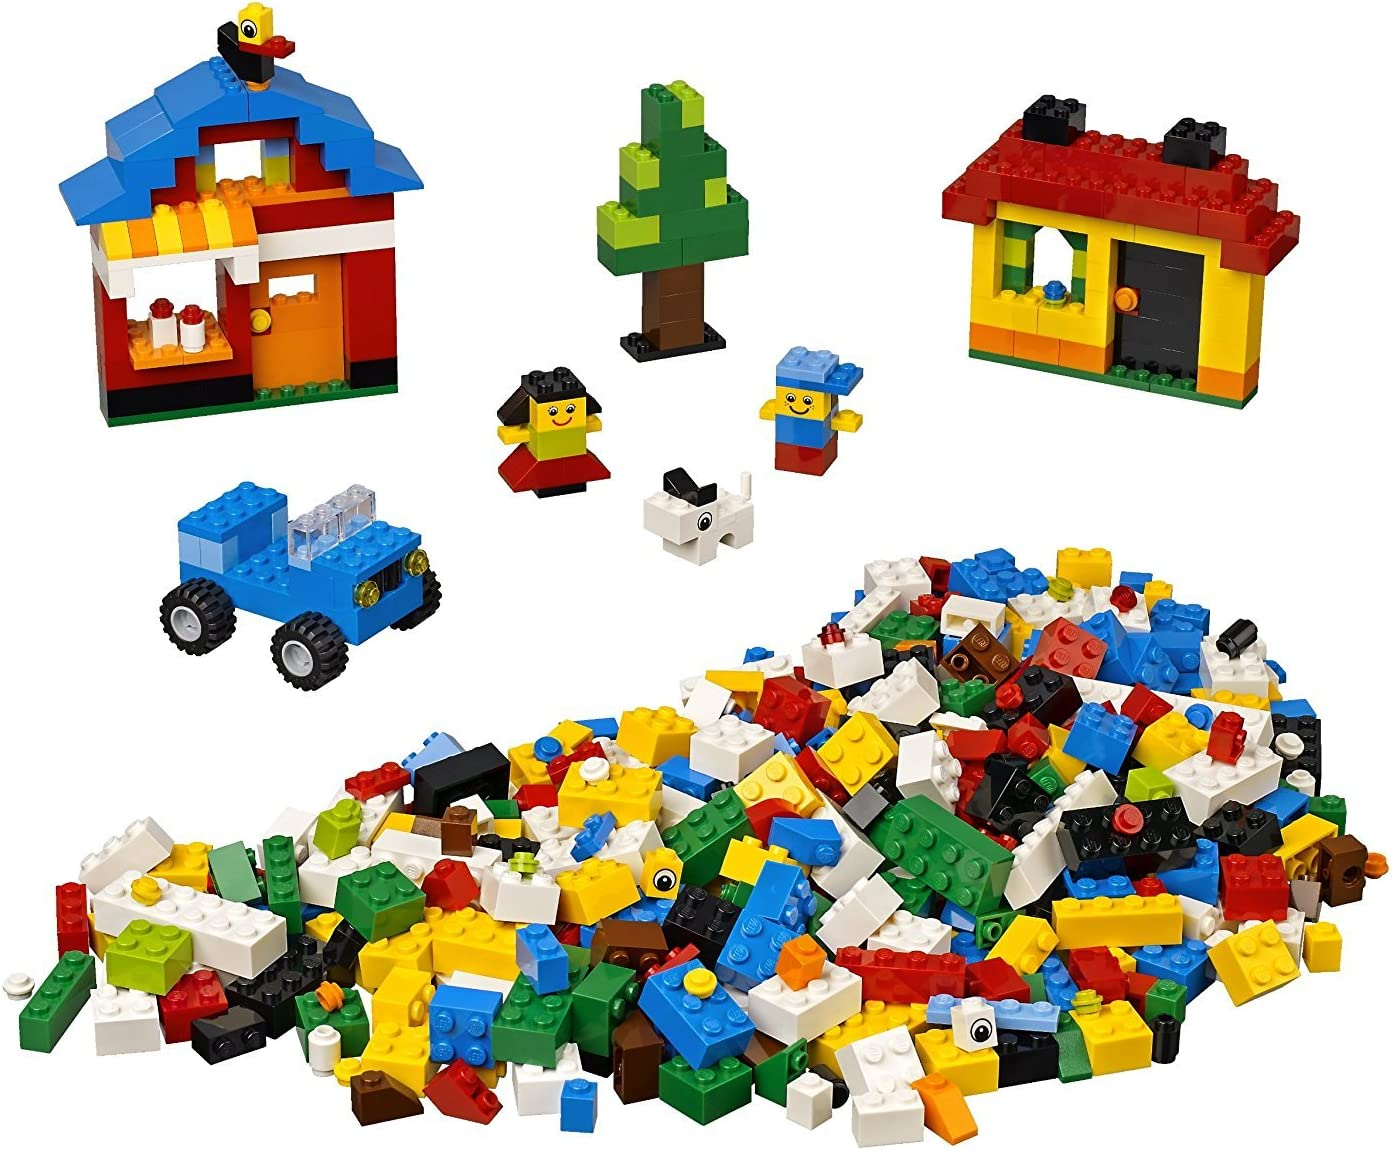 LEGO Fun with Bricks Building Set, 600 pieces